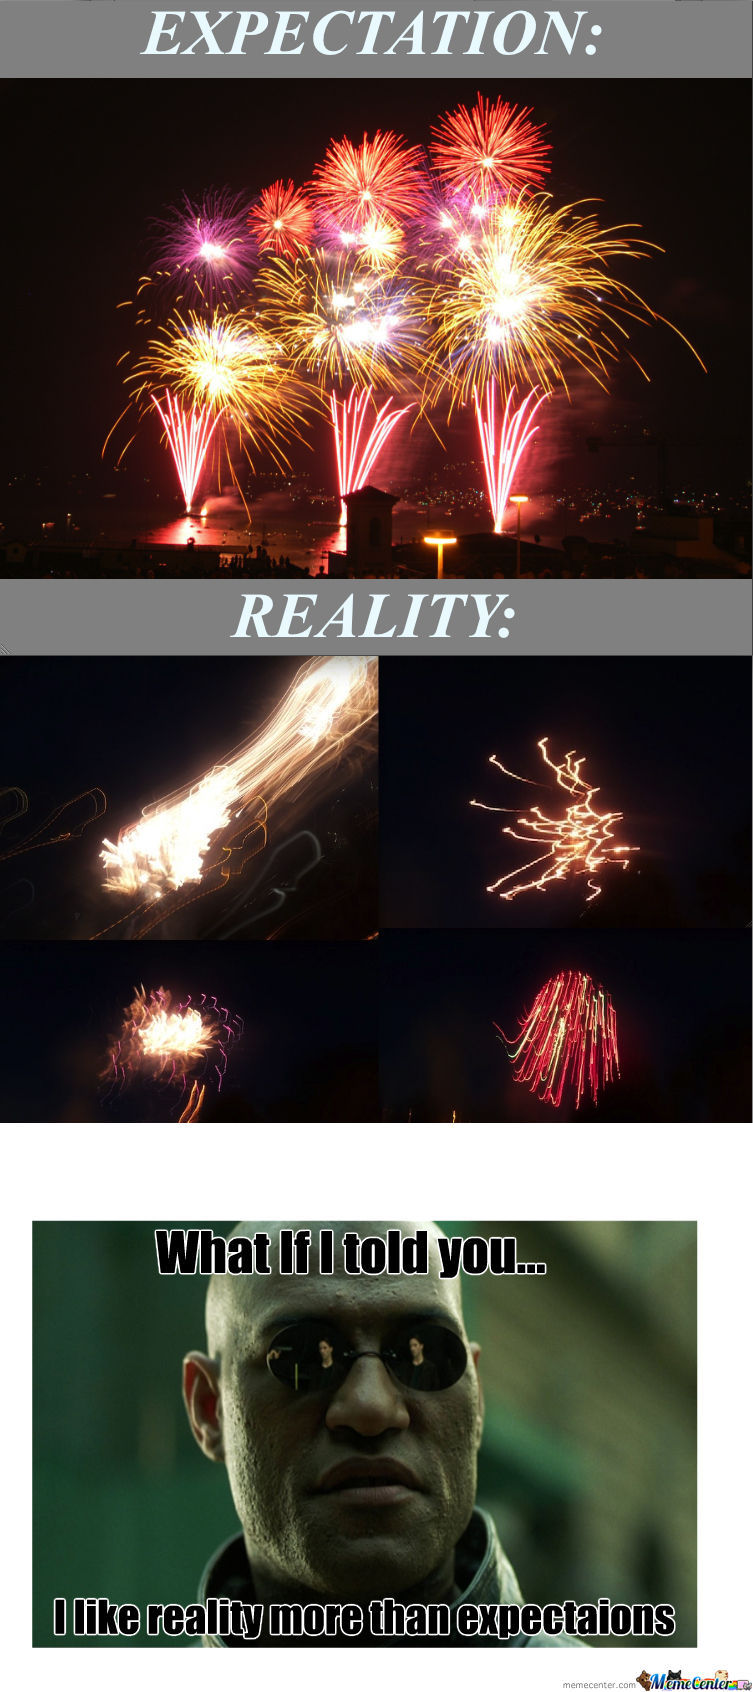 [RMX] Taking Picture Of Fireworks